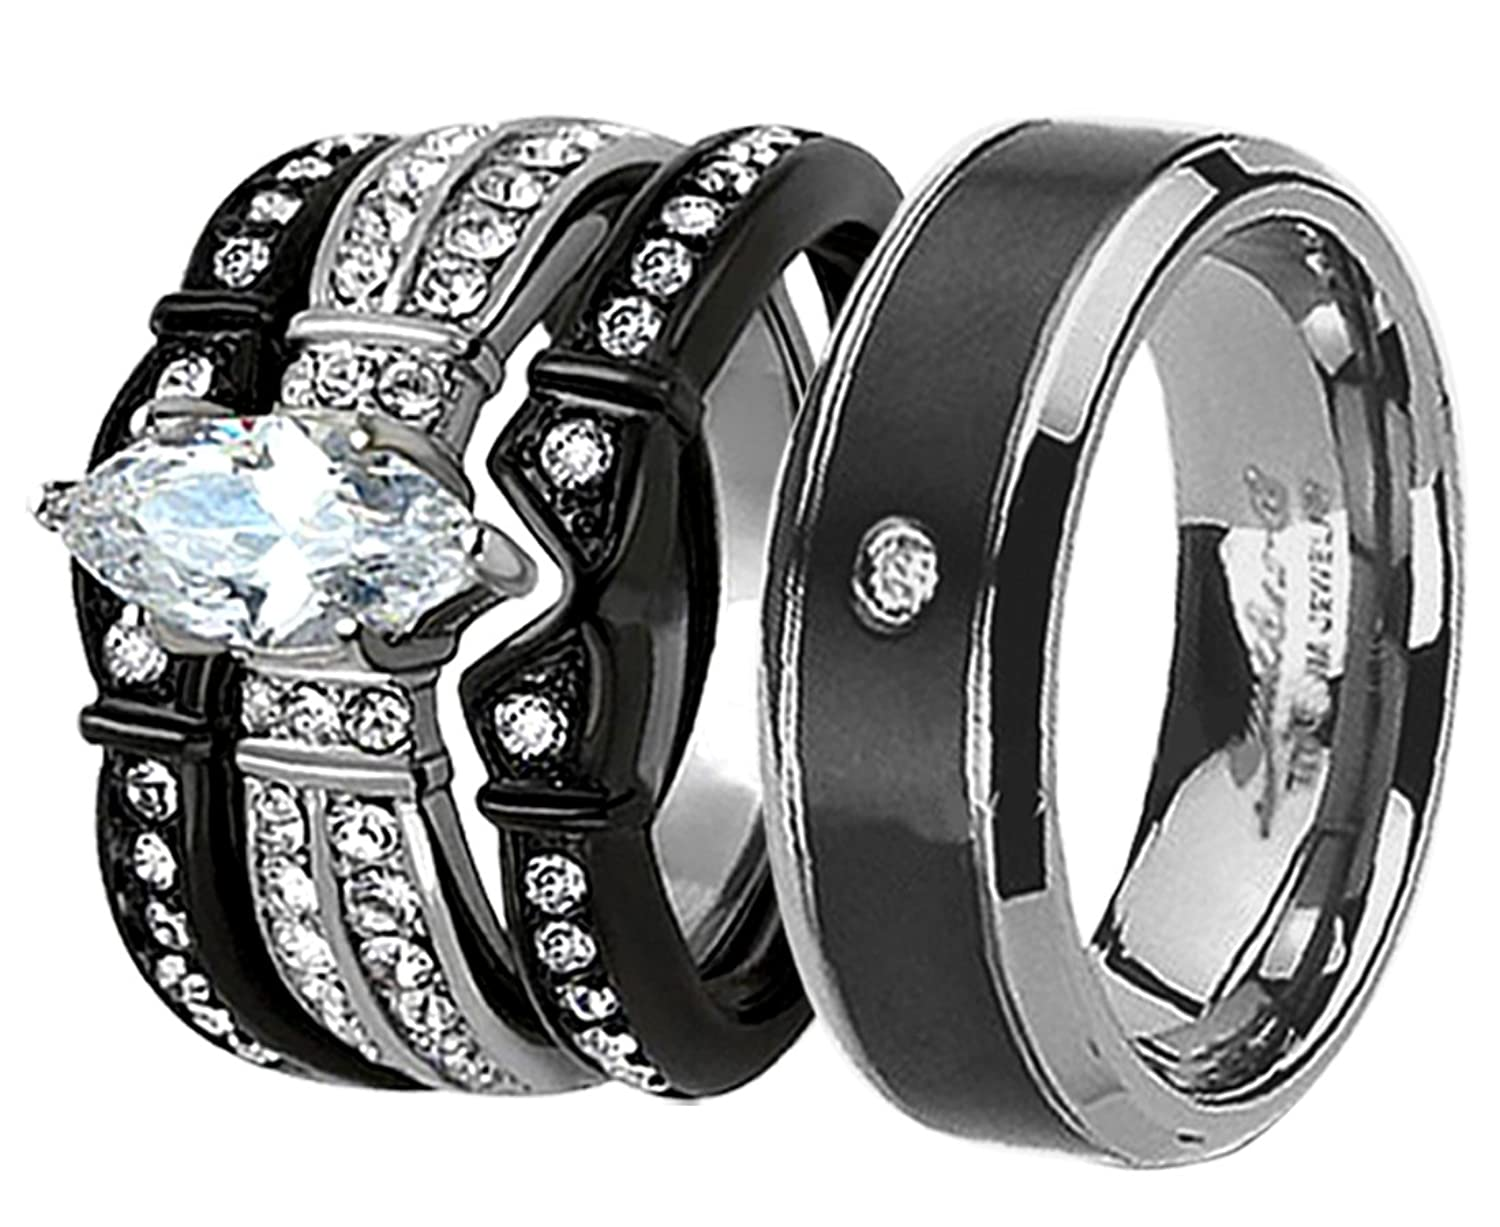 amazoncom his and hers wedding ring sets couples matching rings black womens stainless steel cubic zirconia wedding engagement ring bridal sets mens - Wedding Rings Sets For Women